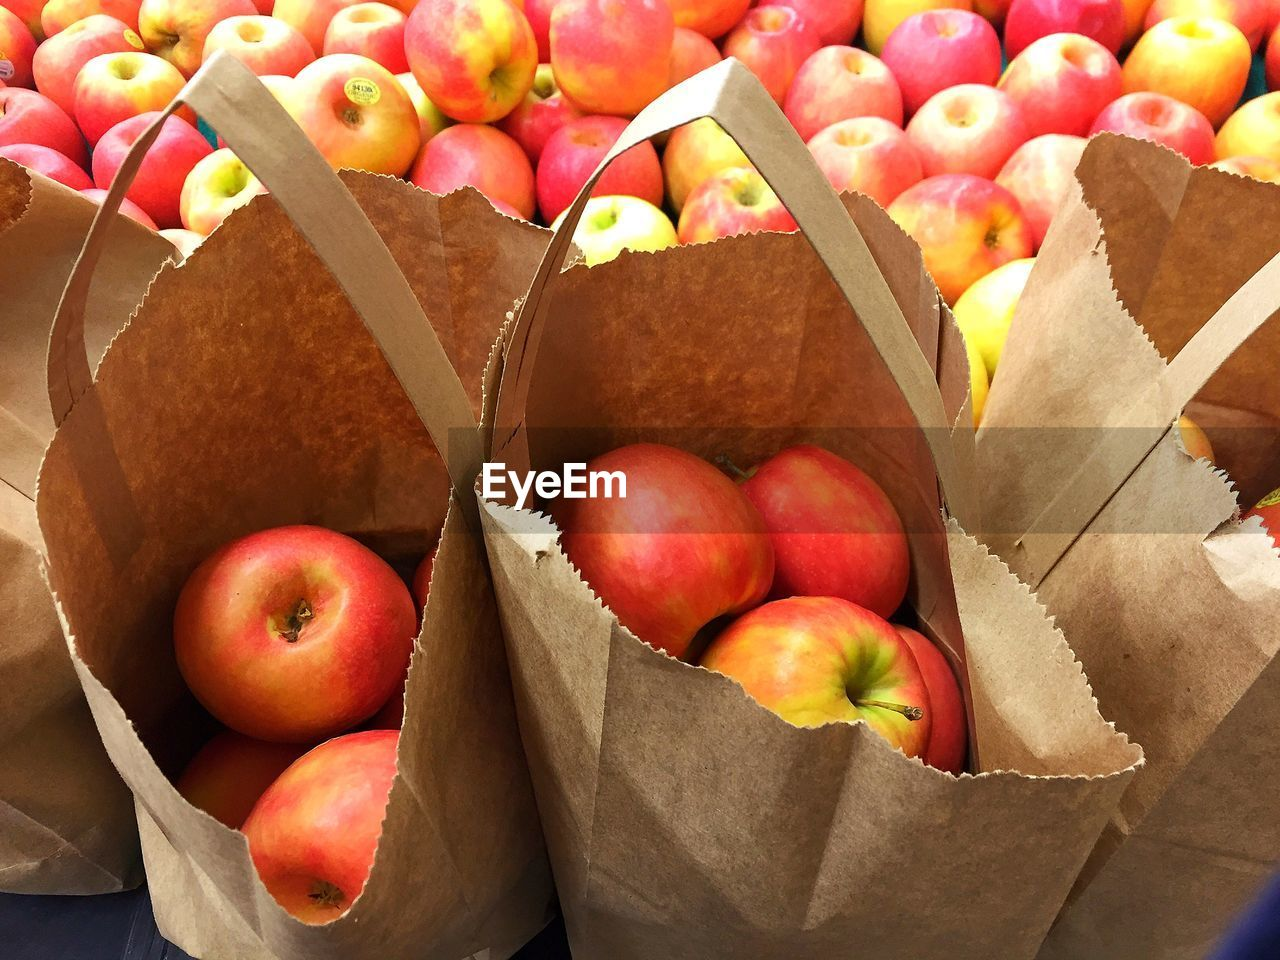 food and drink, food, freshness, healthy eating, fruit, still life, wellbeing, paper bag, no people, large group of objects, container, high angle view, paper, bag, variation, choice, indoors, retail, abundance, red, box - container, ripe